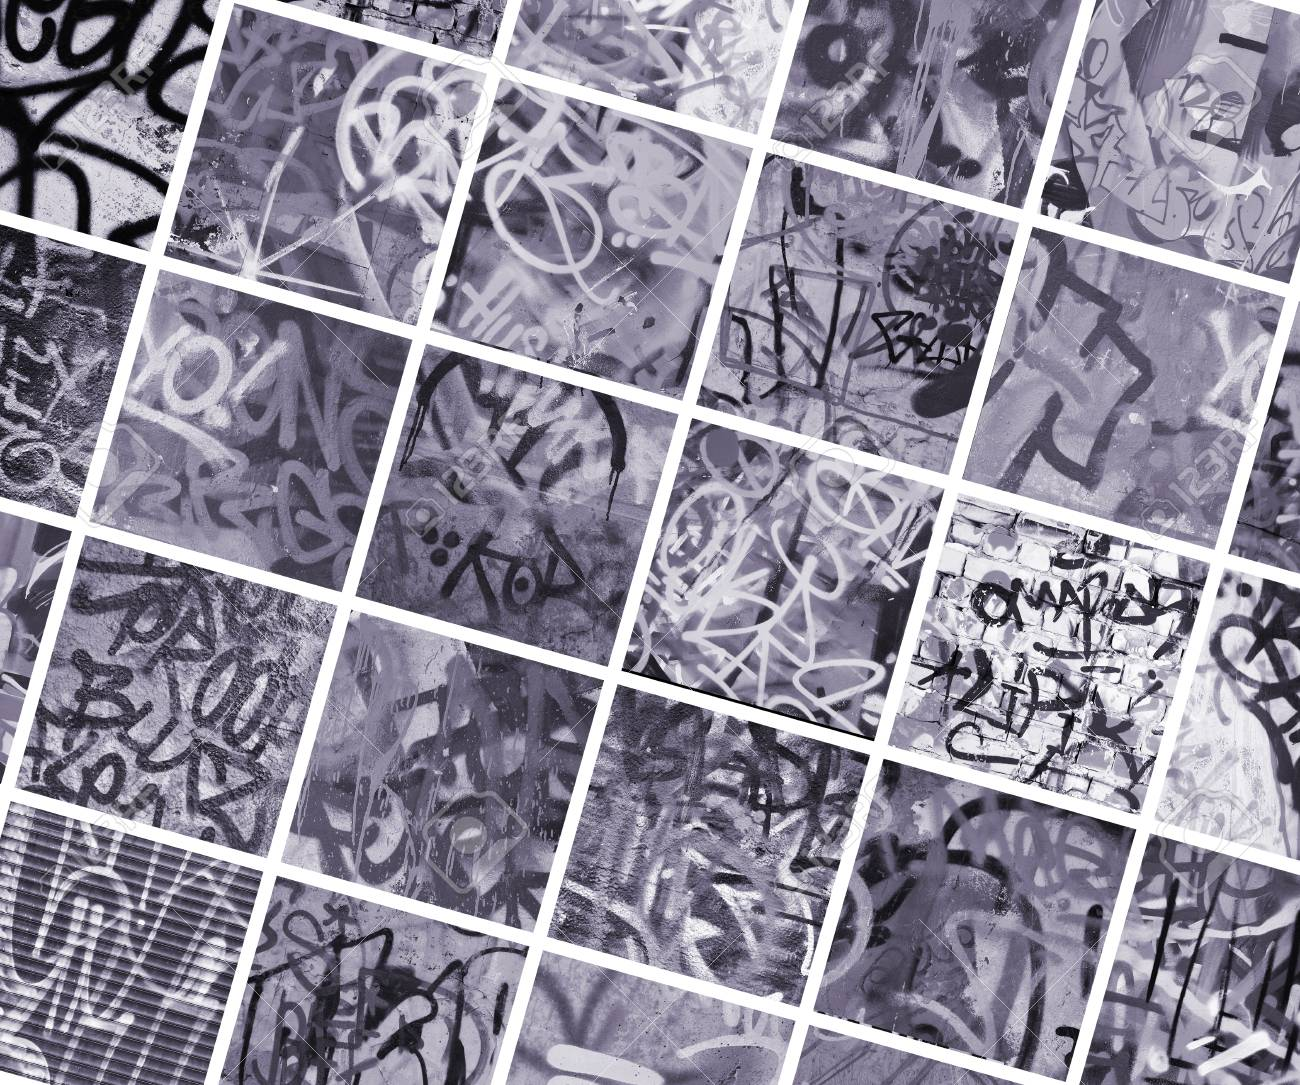 A set of many small fragments of tagged walls graffiti vandalism abstract background collage stock